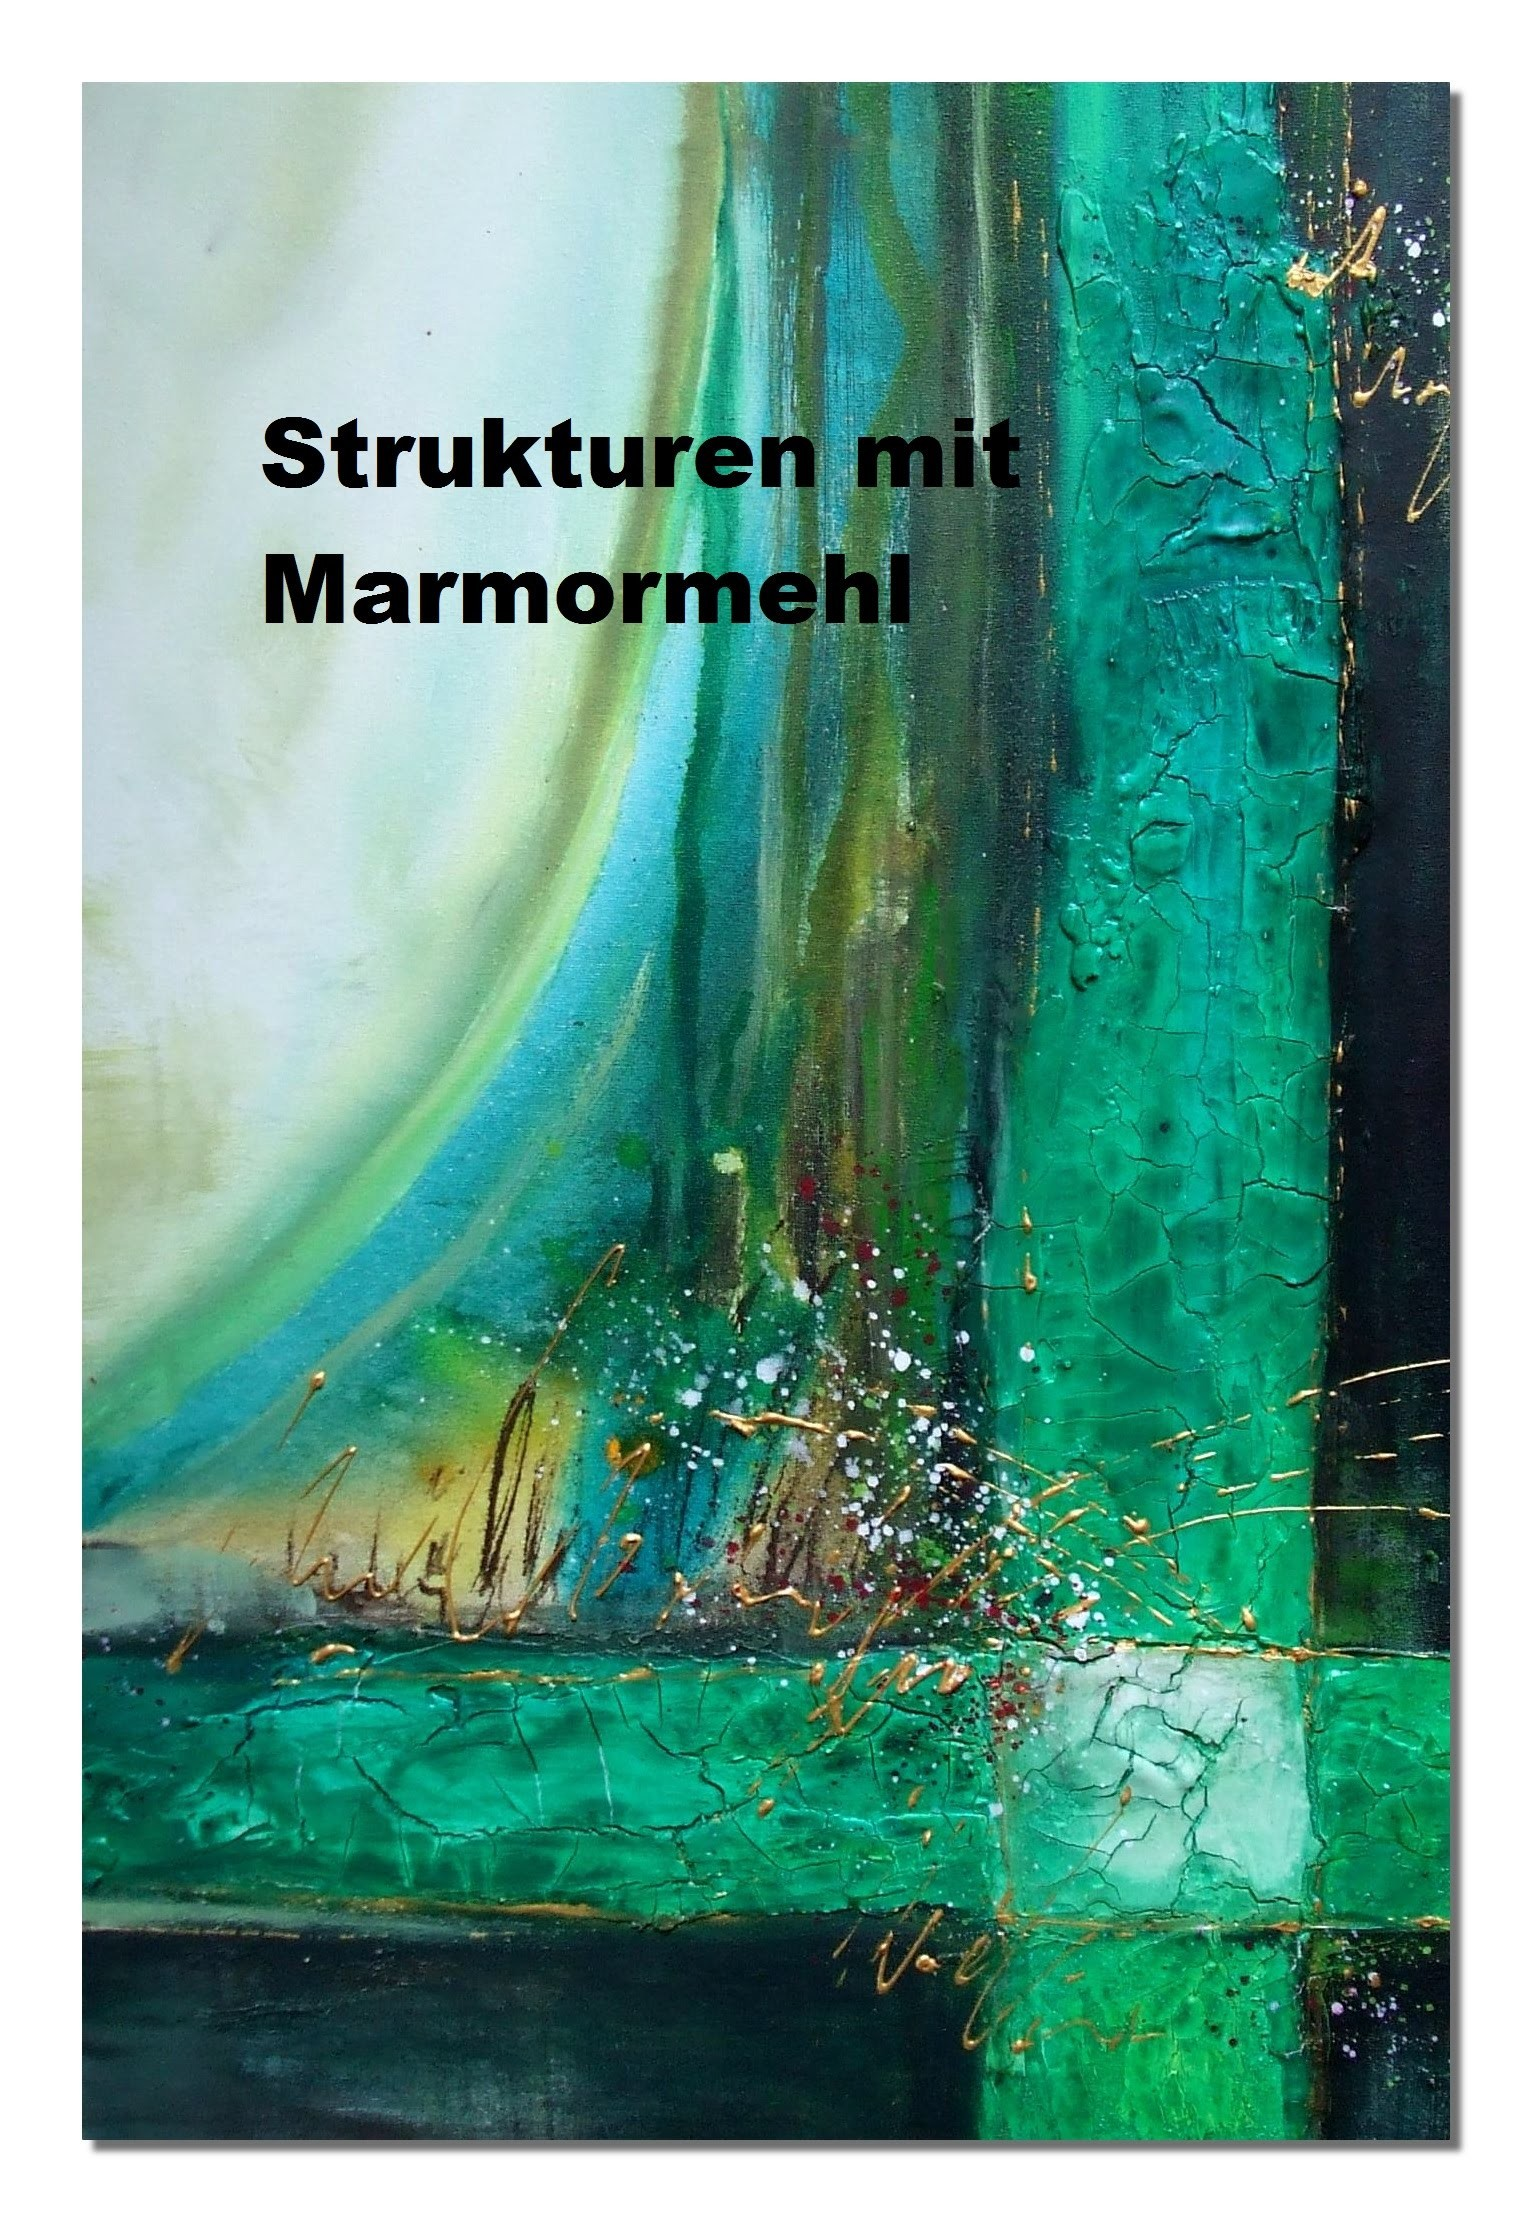 Abstract painting, Acrylmalerei, Spachtelmasse Marmormehl